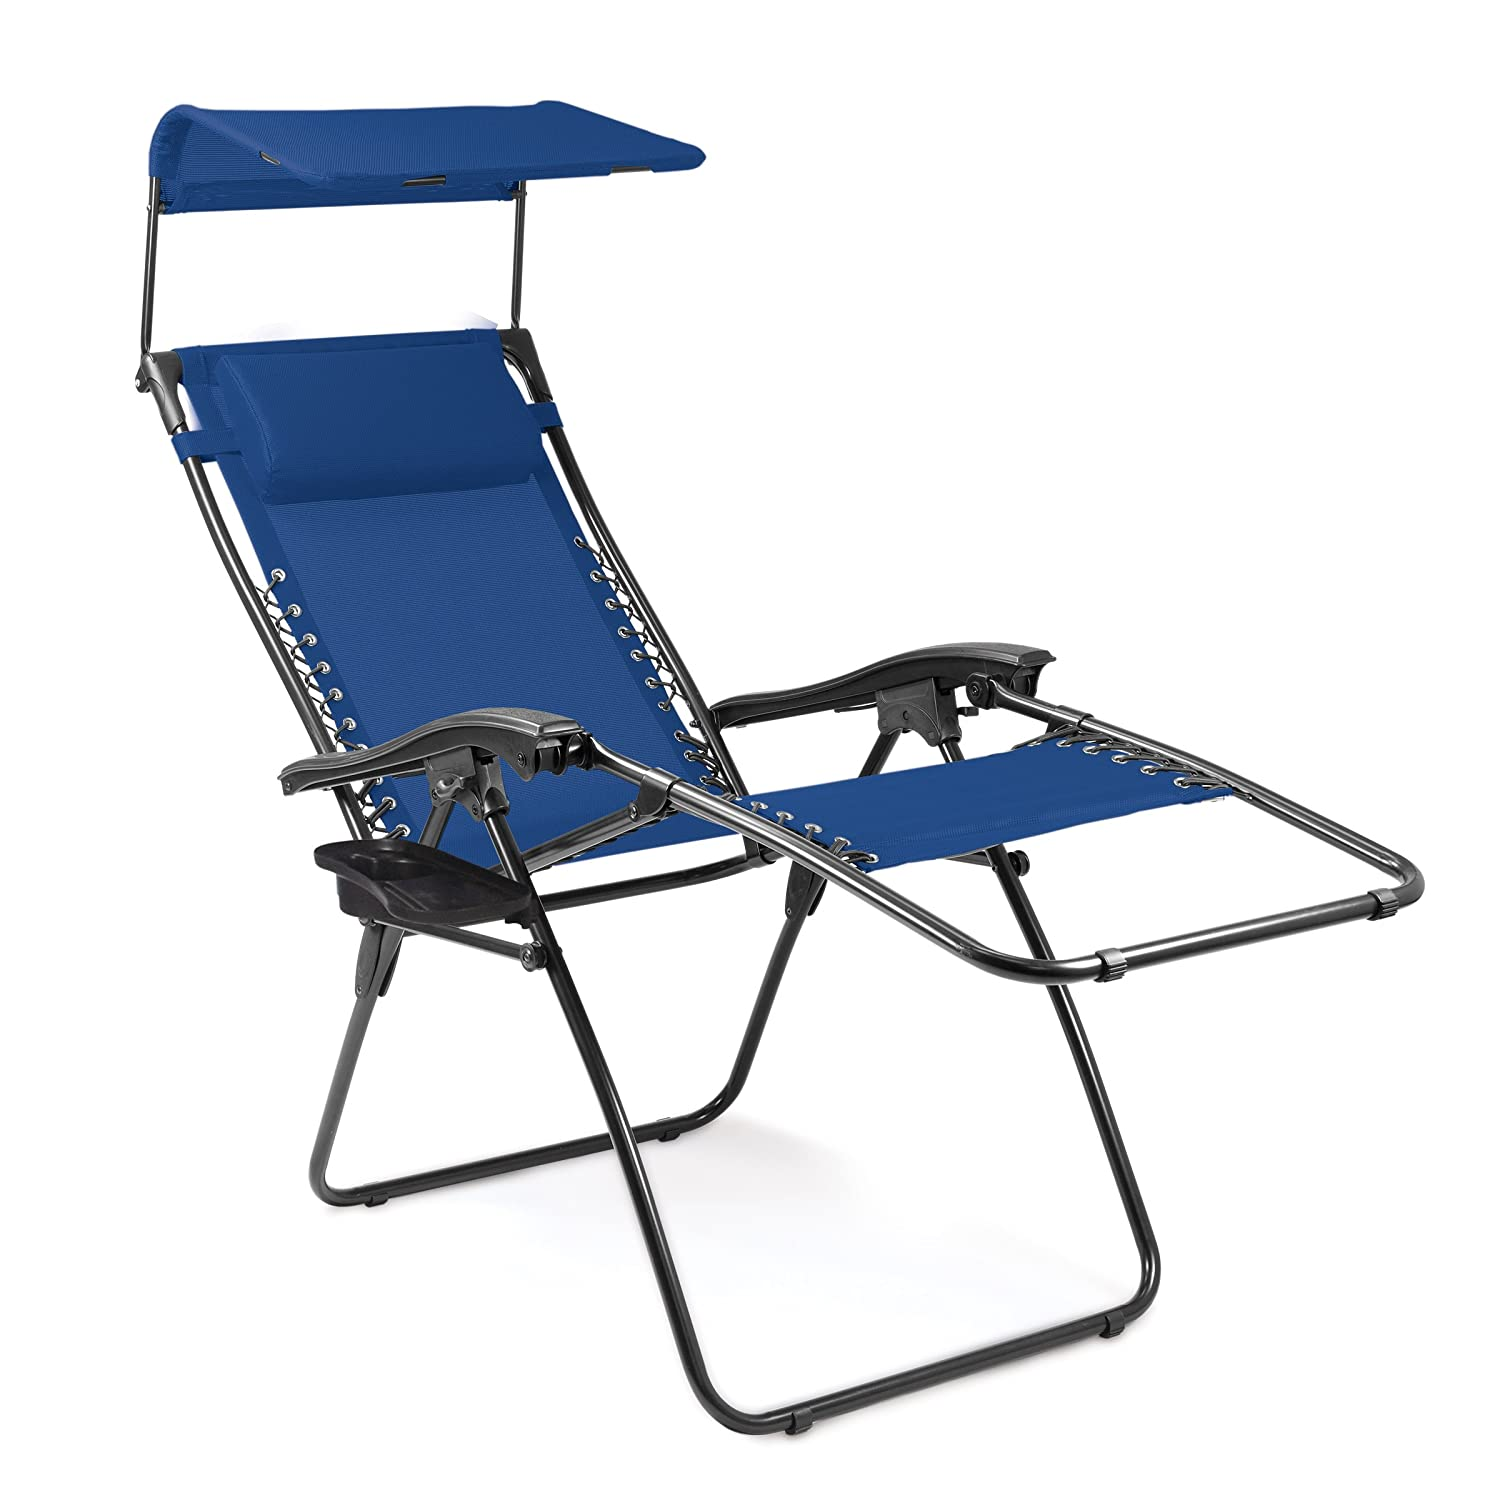 Amazon.com  Picnic Time Portable Serenity Reclining Lounge Chair Navy  C&ing Chairs  Sports u0026 Outdoors  sc 1 st  Amazon.com : reclining lounge chairs - islam-shia.org